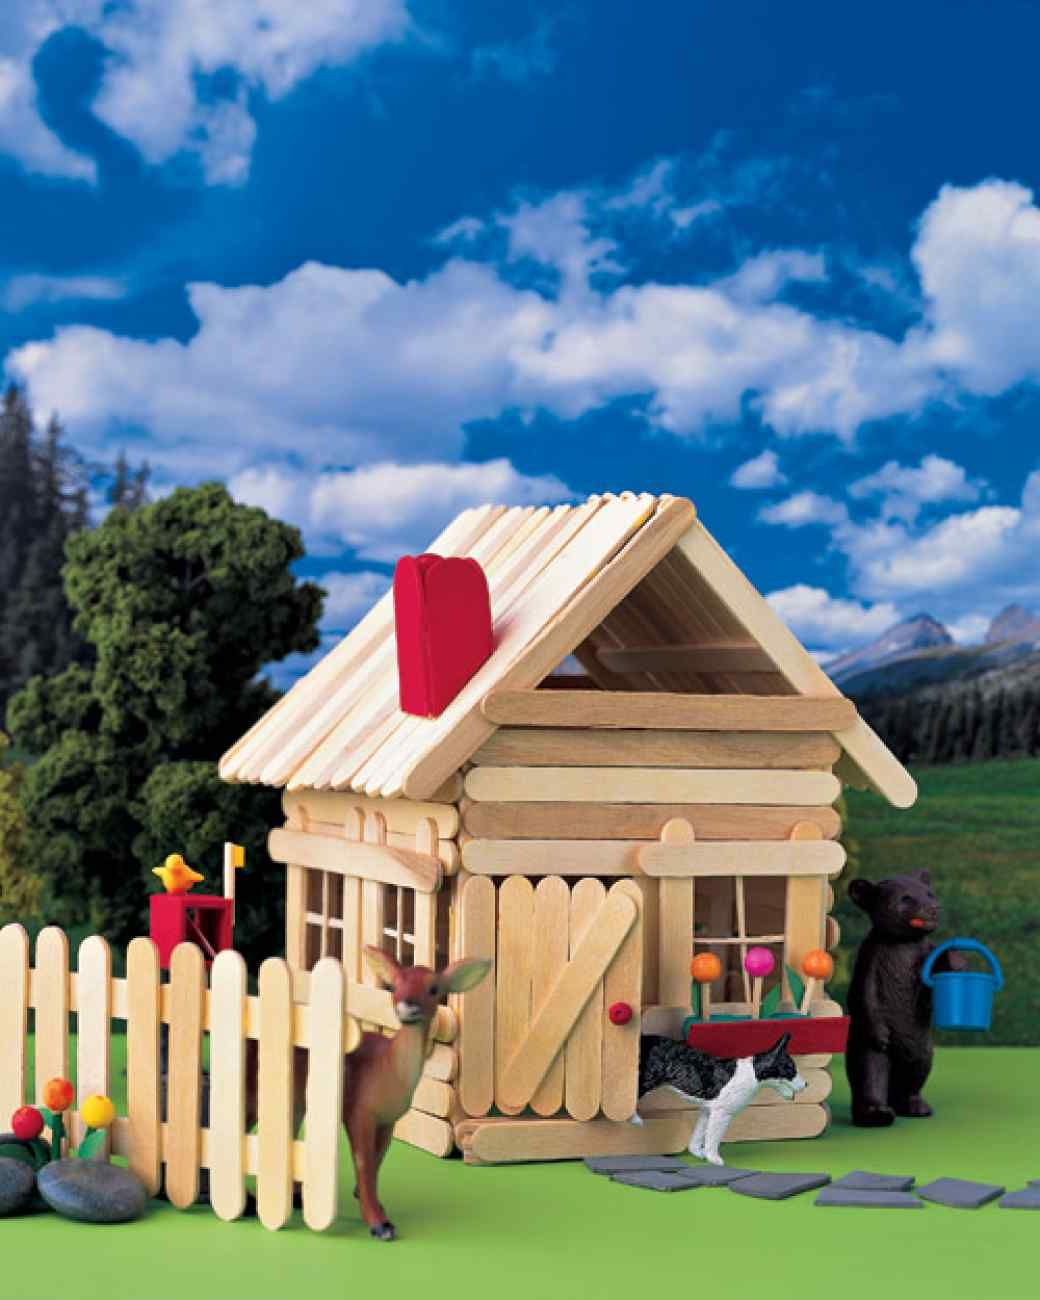 Popsicle stick house popsicle stick houses martha stewart and house make a village of popsicle stick houses directions for this one are from martha stewart ccuart Image collections